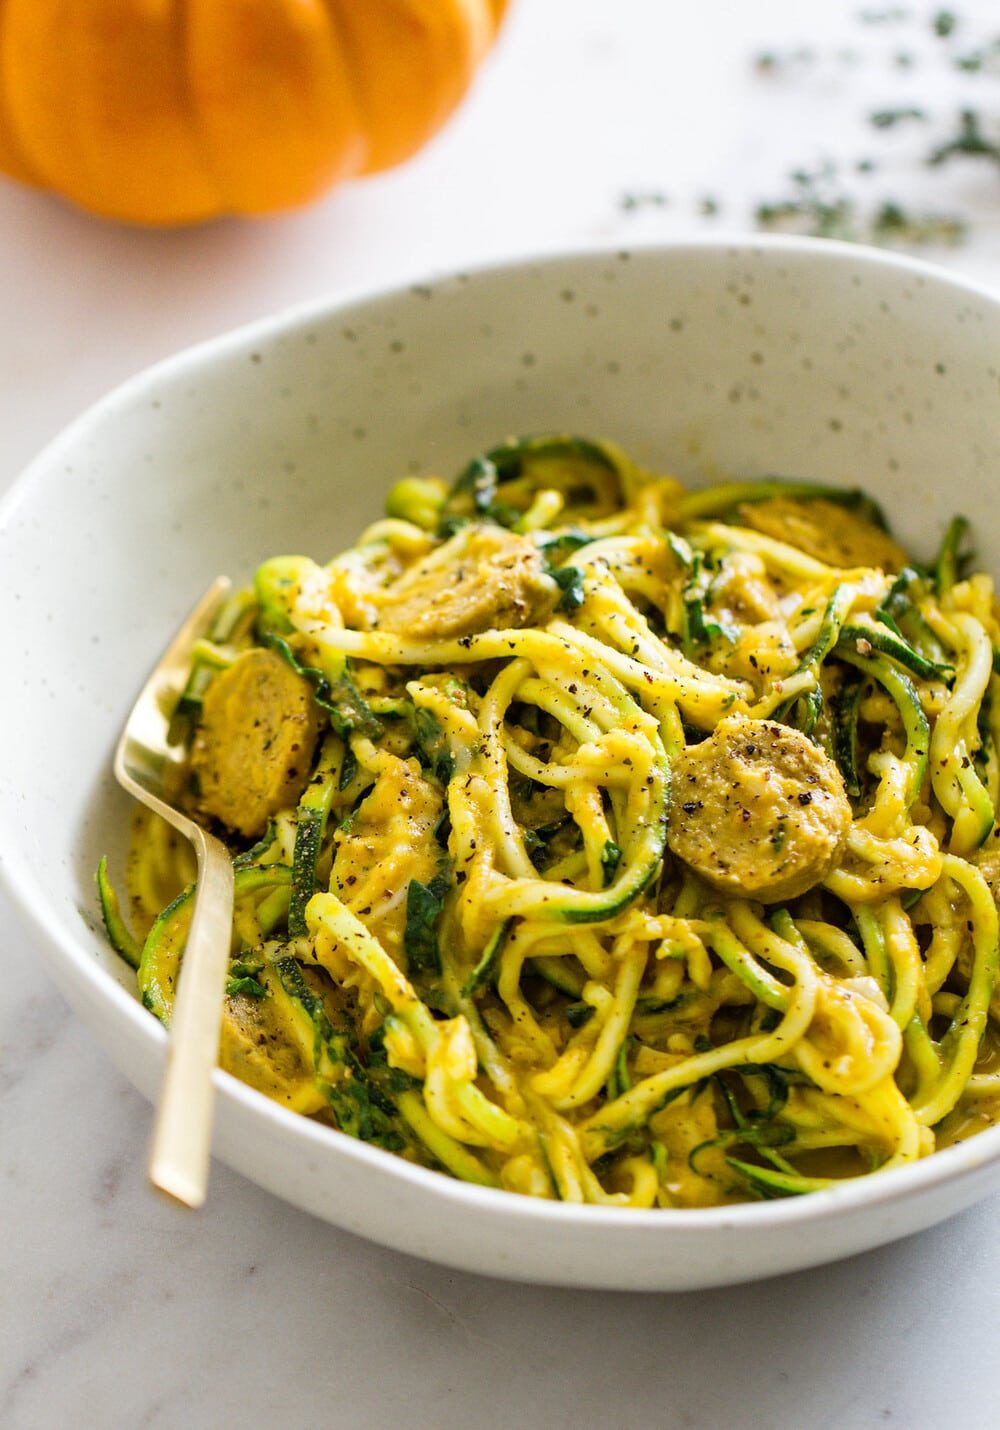 side angle view of creamy pumpkin sauce with kale and mushrooms, tossed with zucchini noodles.